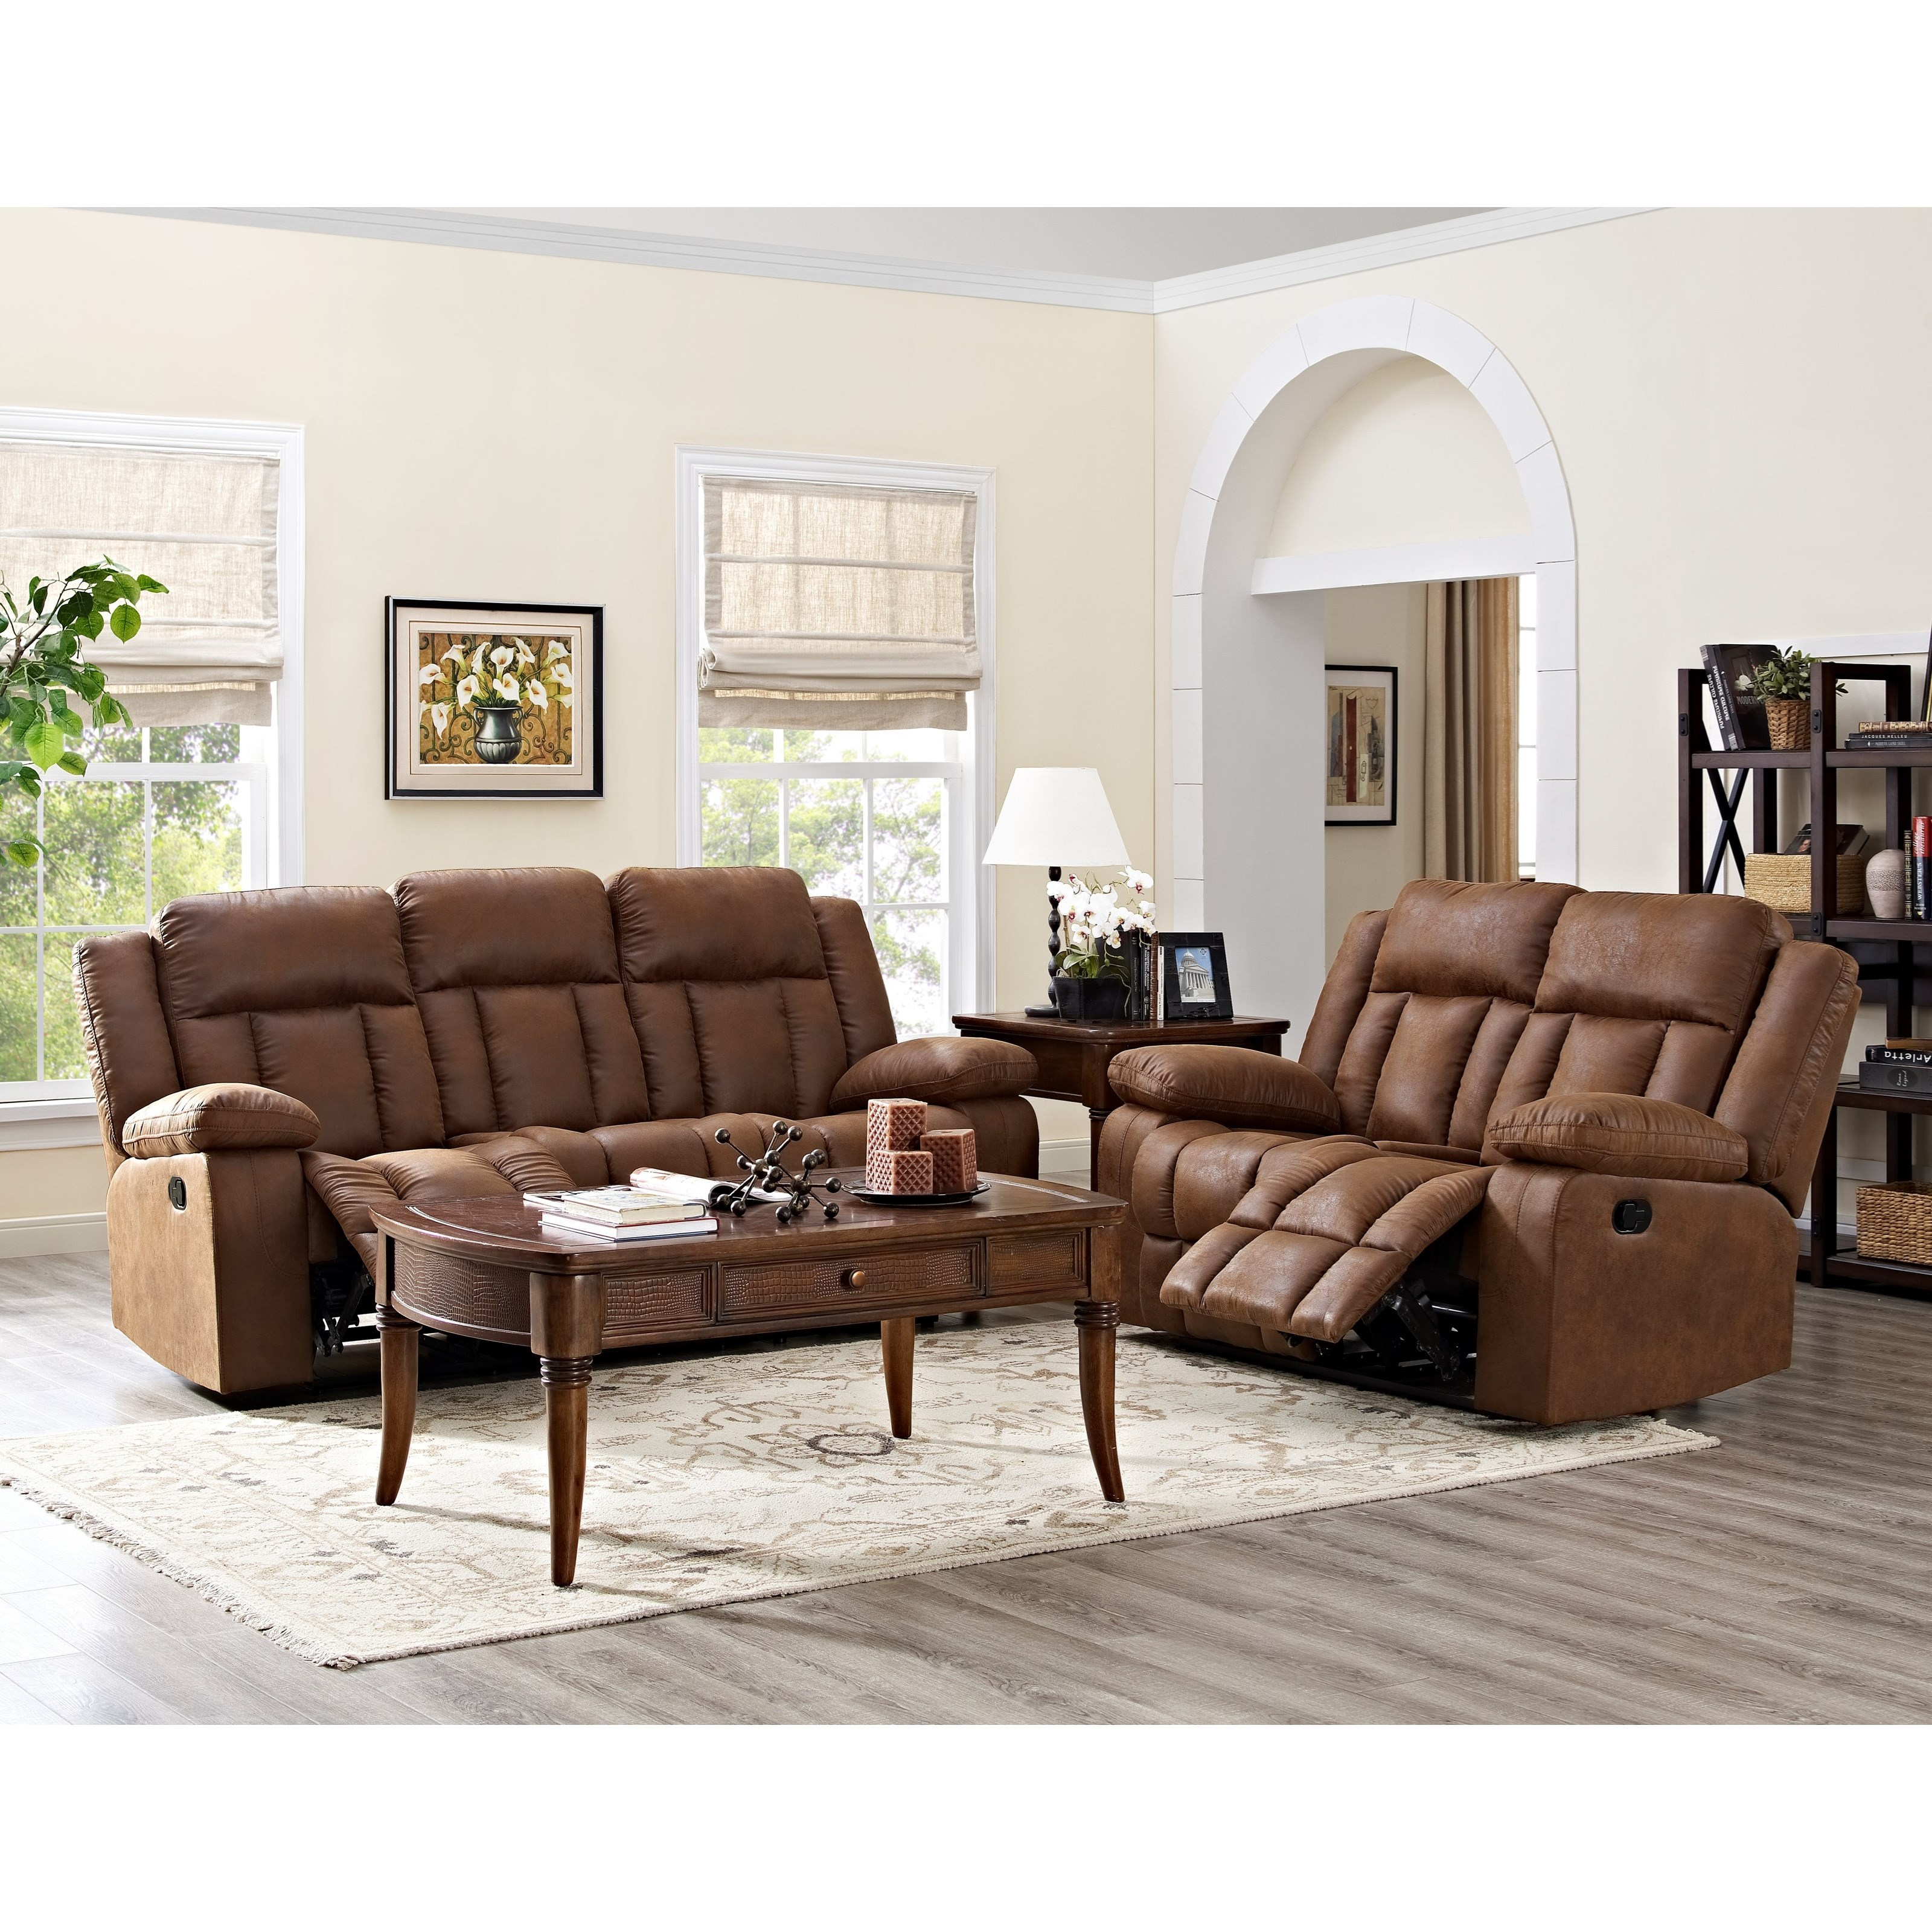 Hayes Power Reclining Living Room Group by New Classic at Beds N Stuff